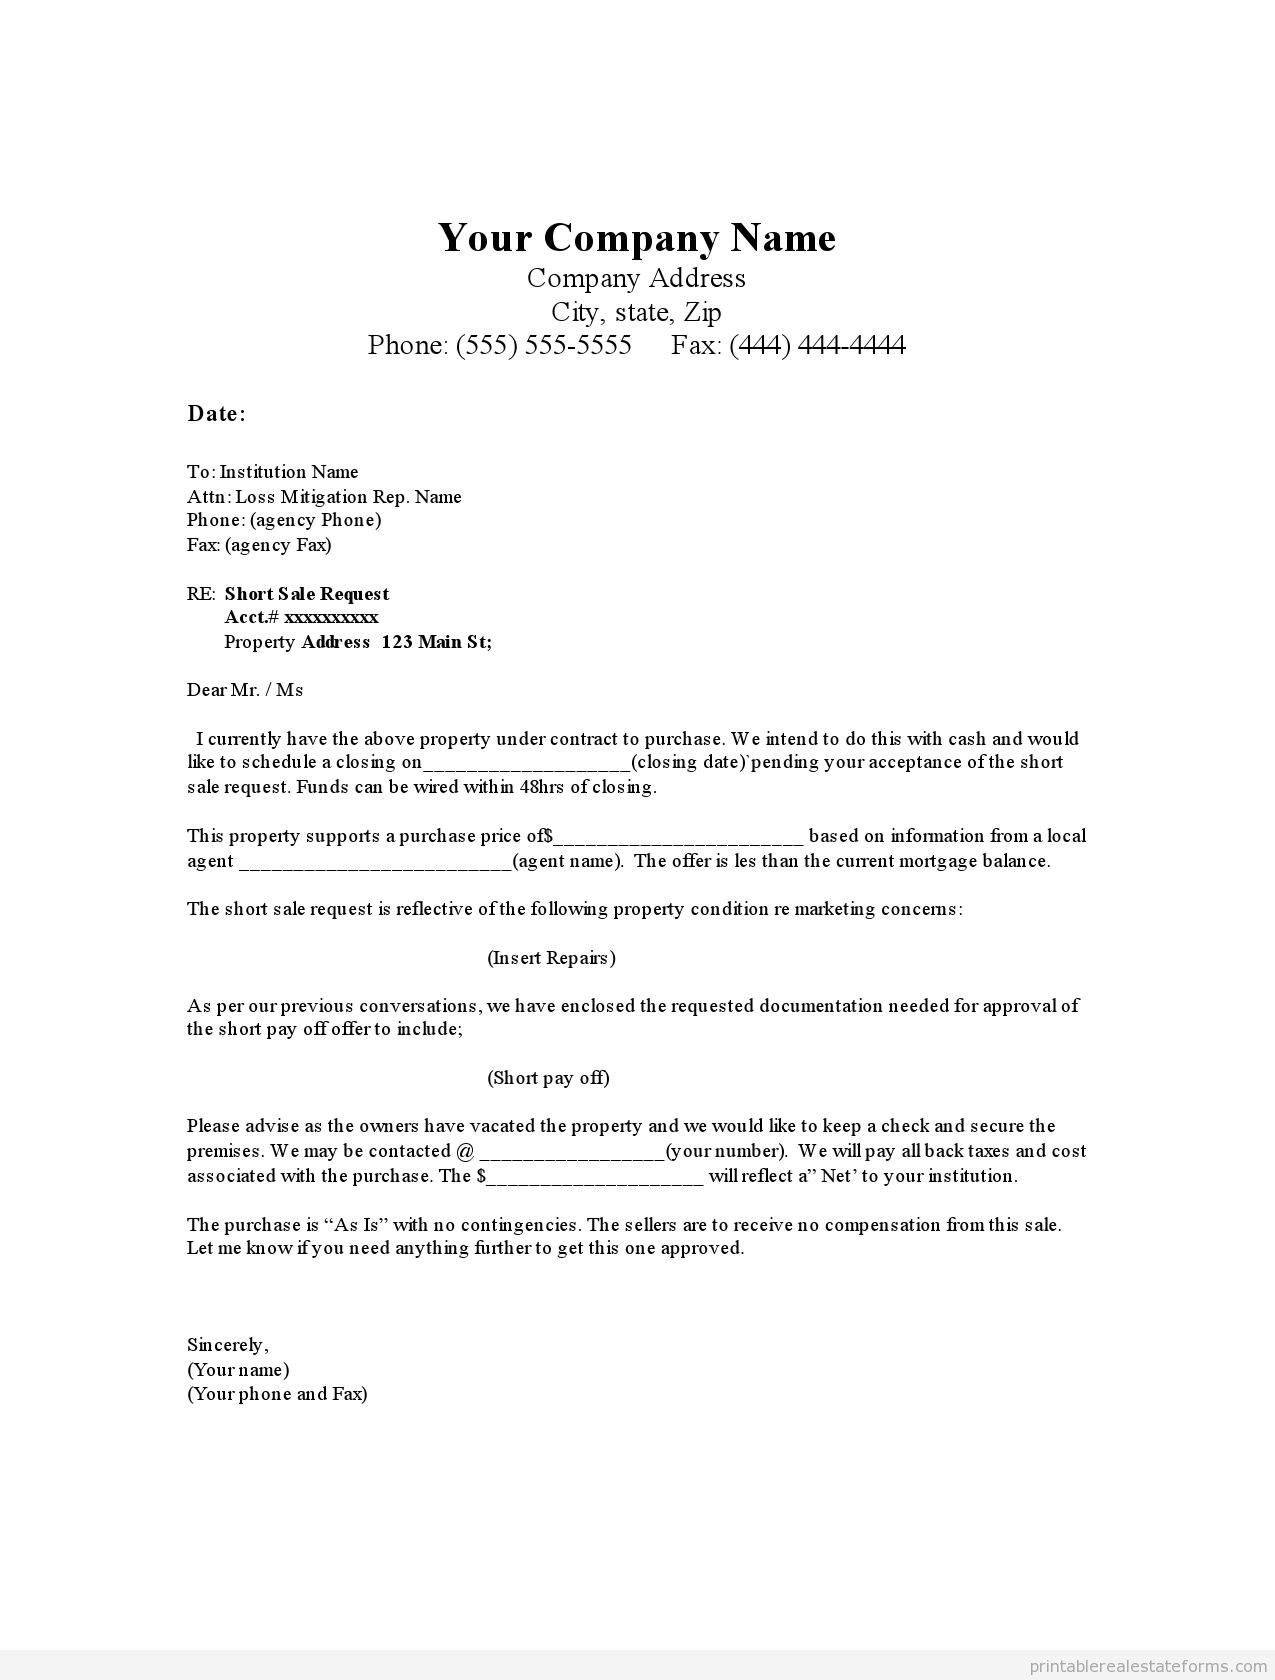 house offer letter template example-Home Fer Letter Template Home fer Letter Sample Ideas 18-h